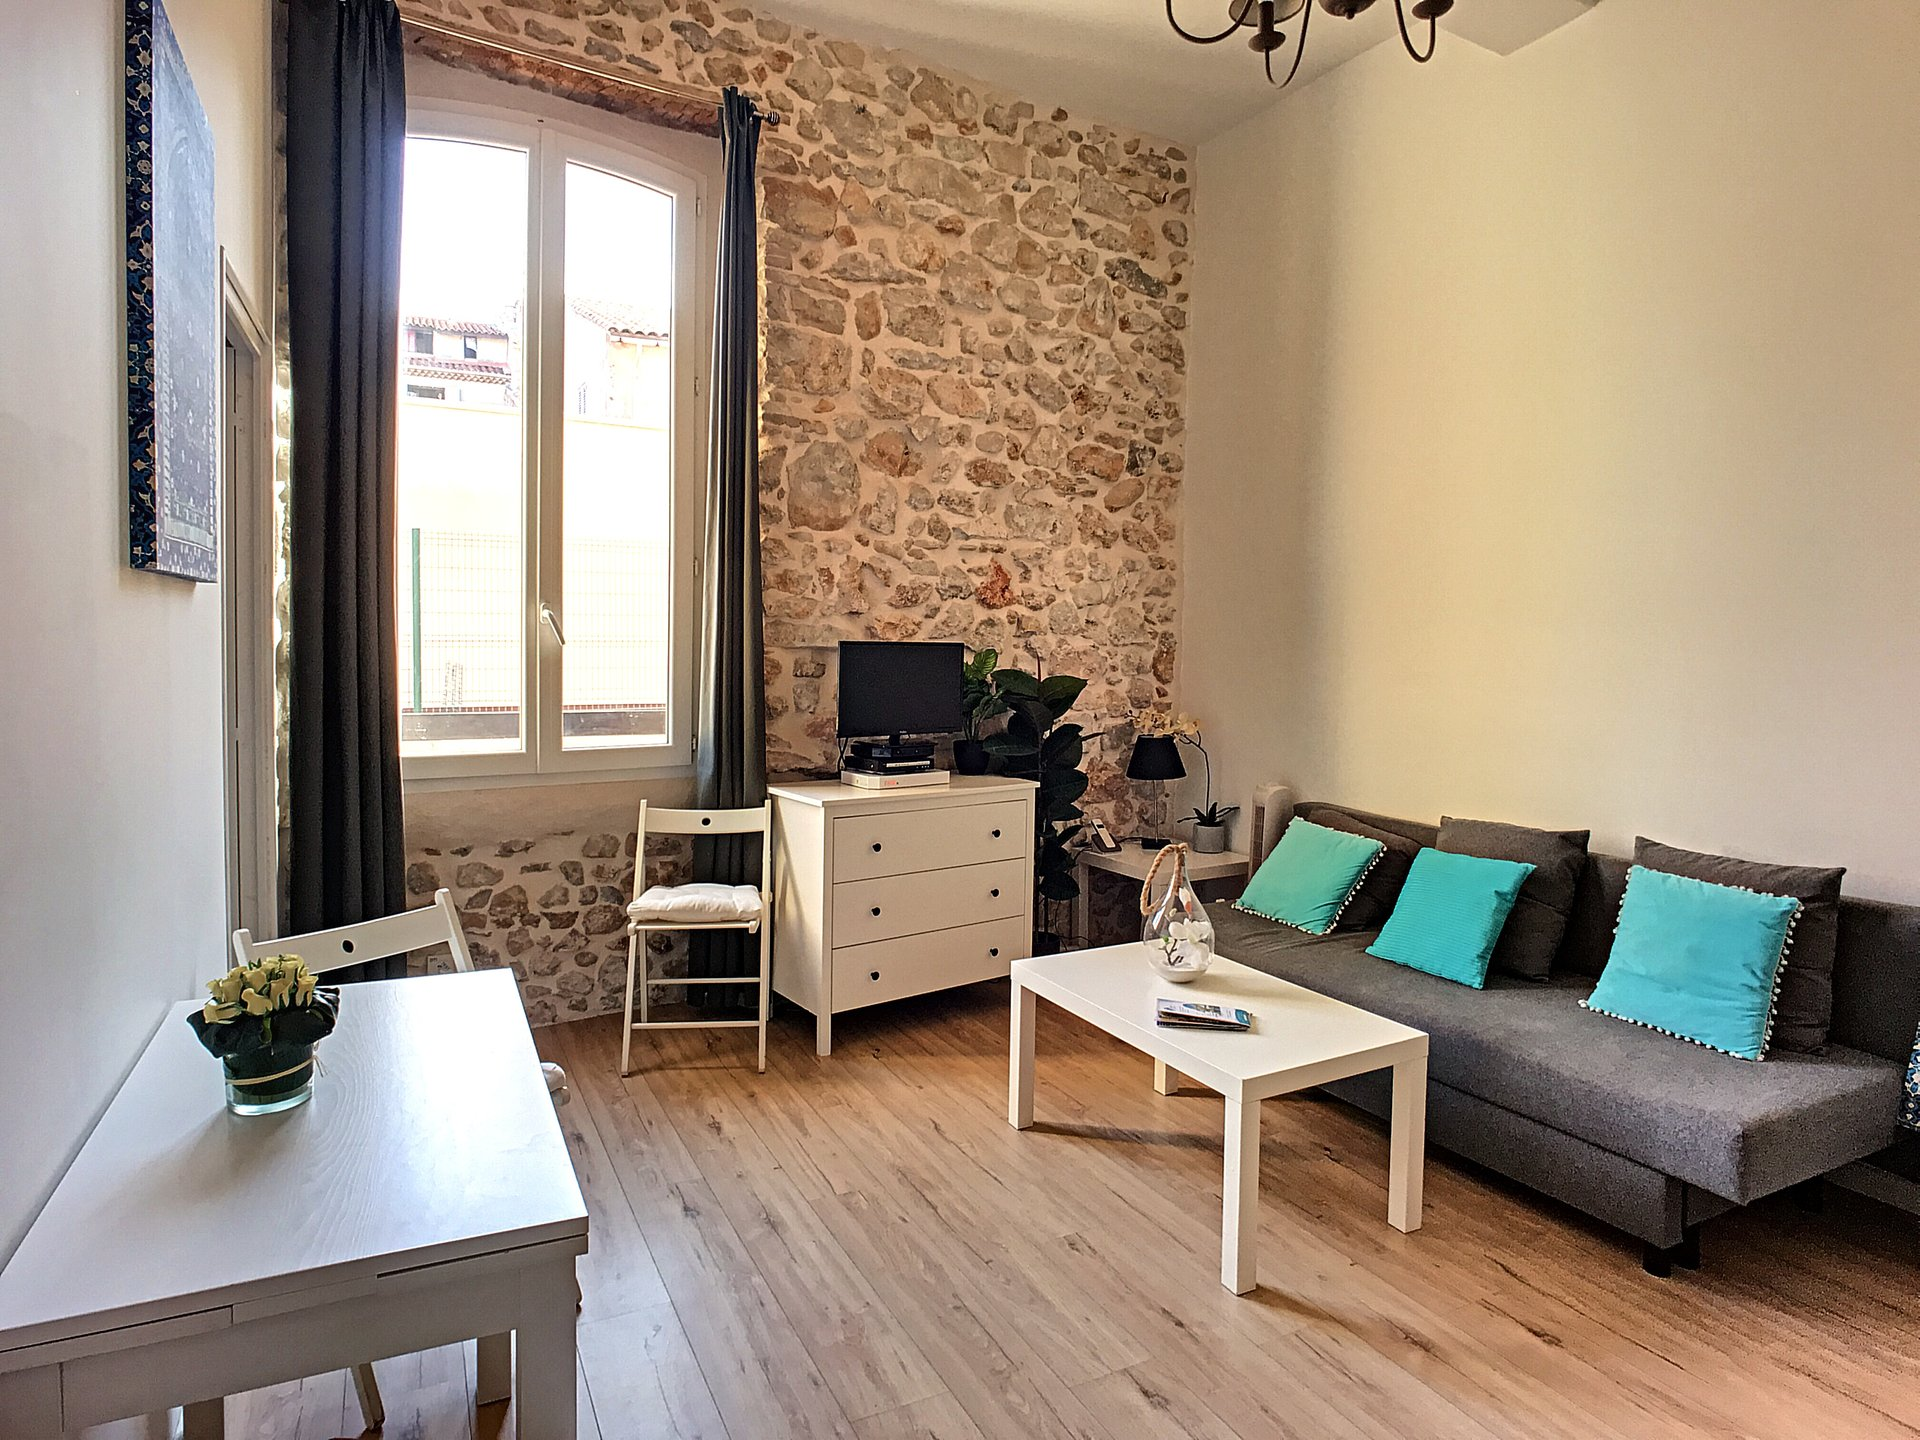 Аpartment in the heart of the old city of Antibes